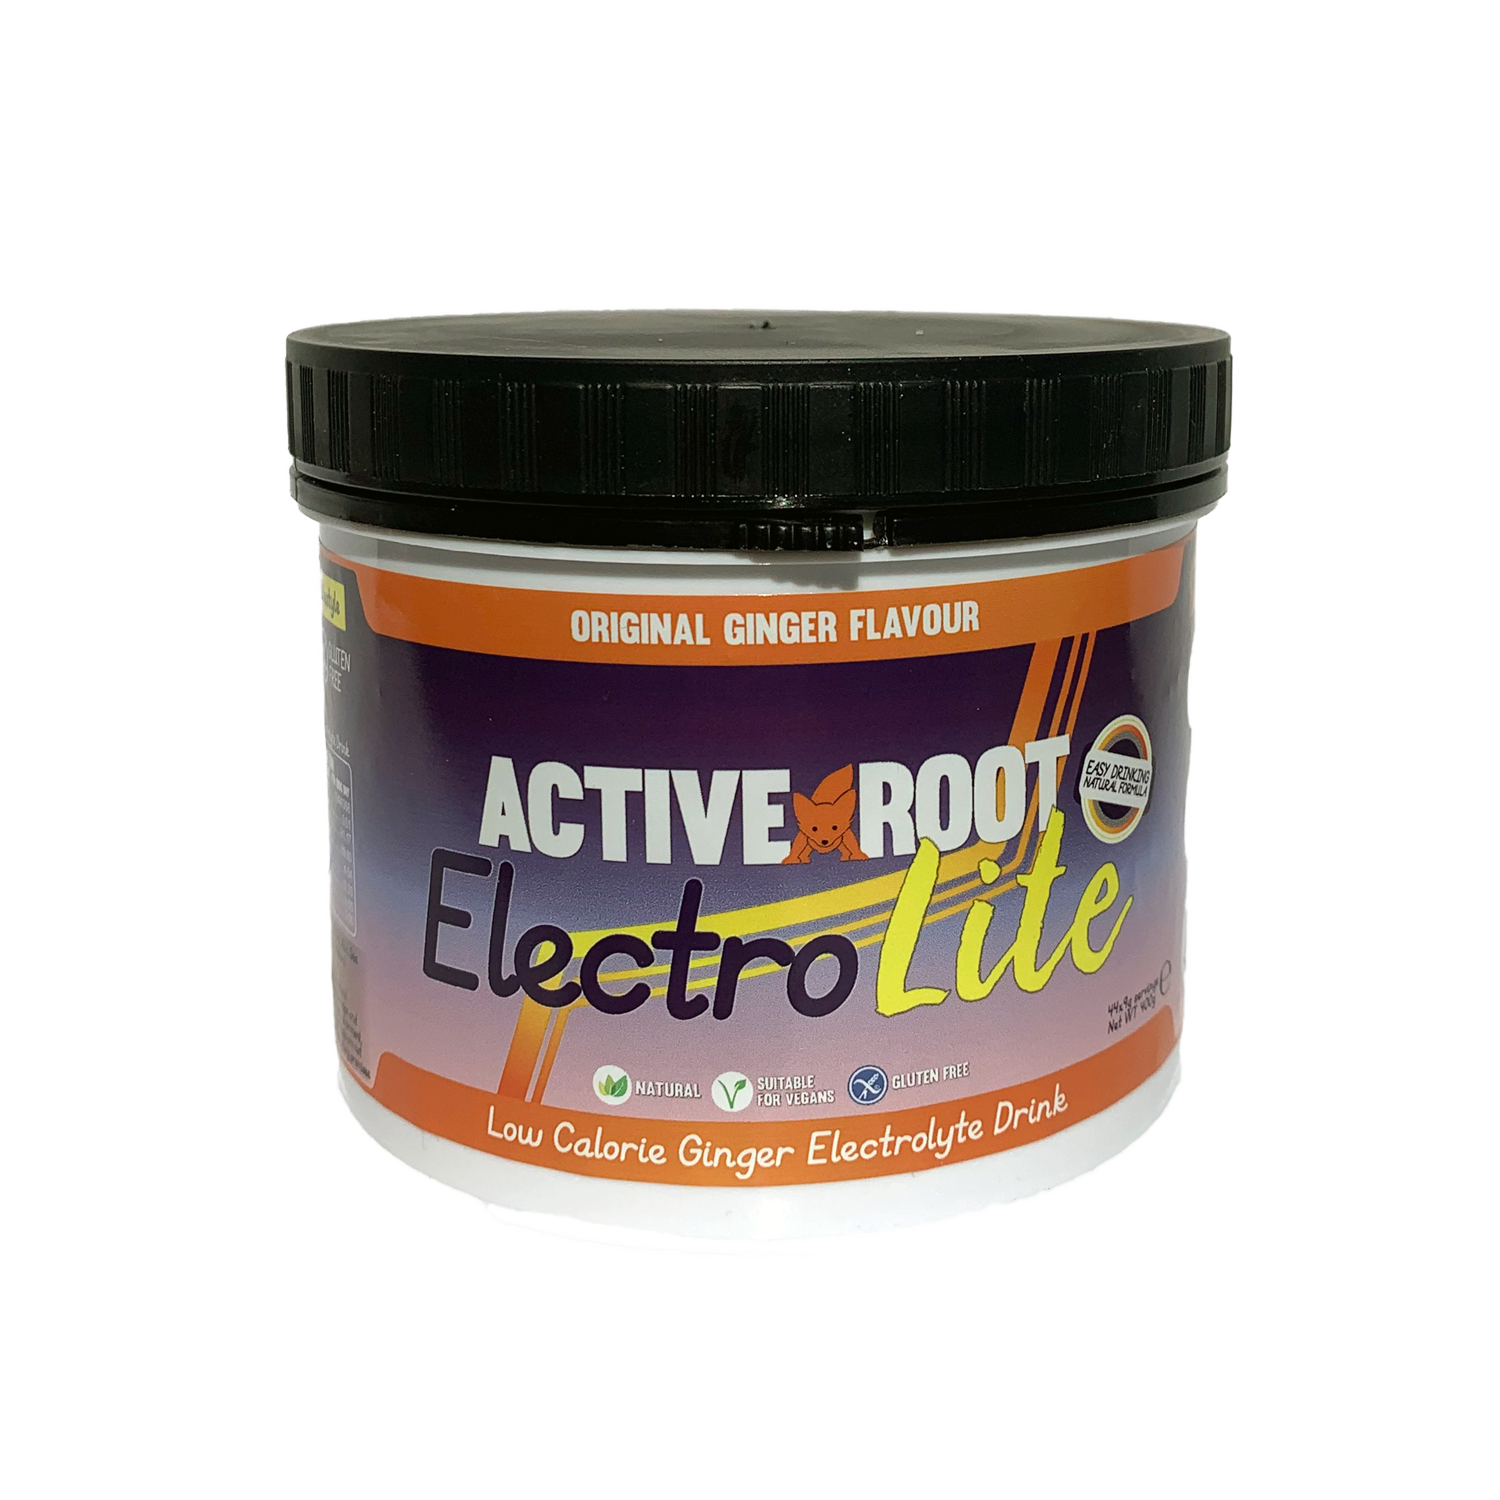 Original Ginger ElectroLite Tub (44 servings) - Active Root